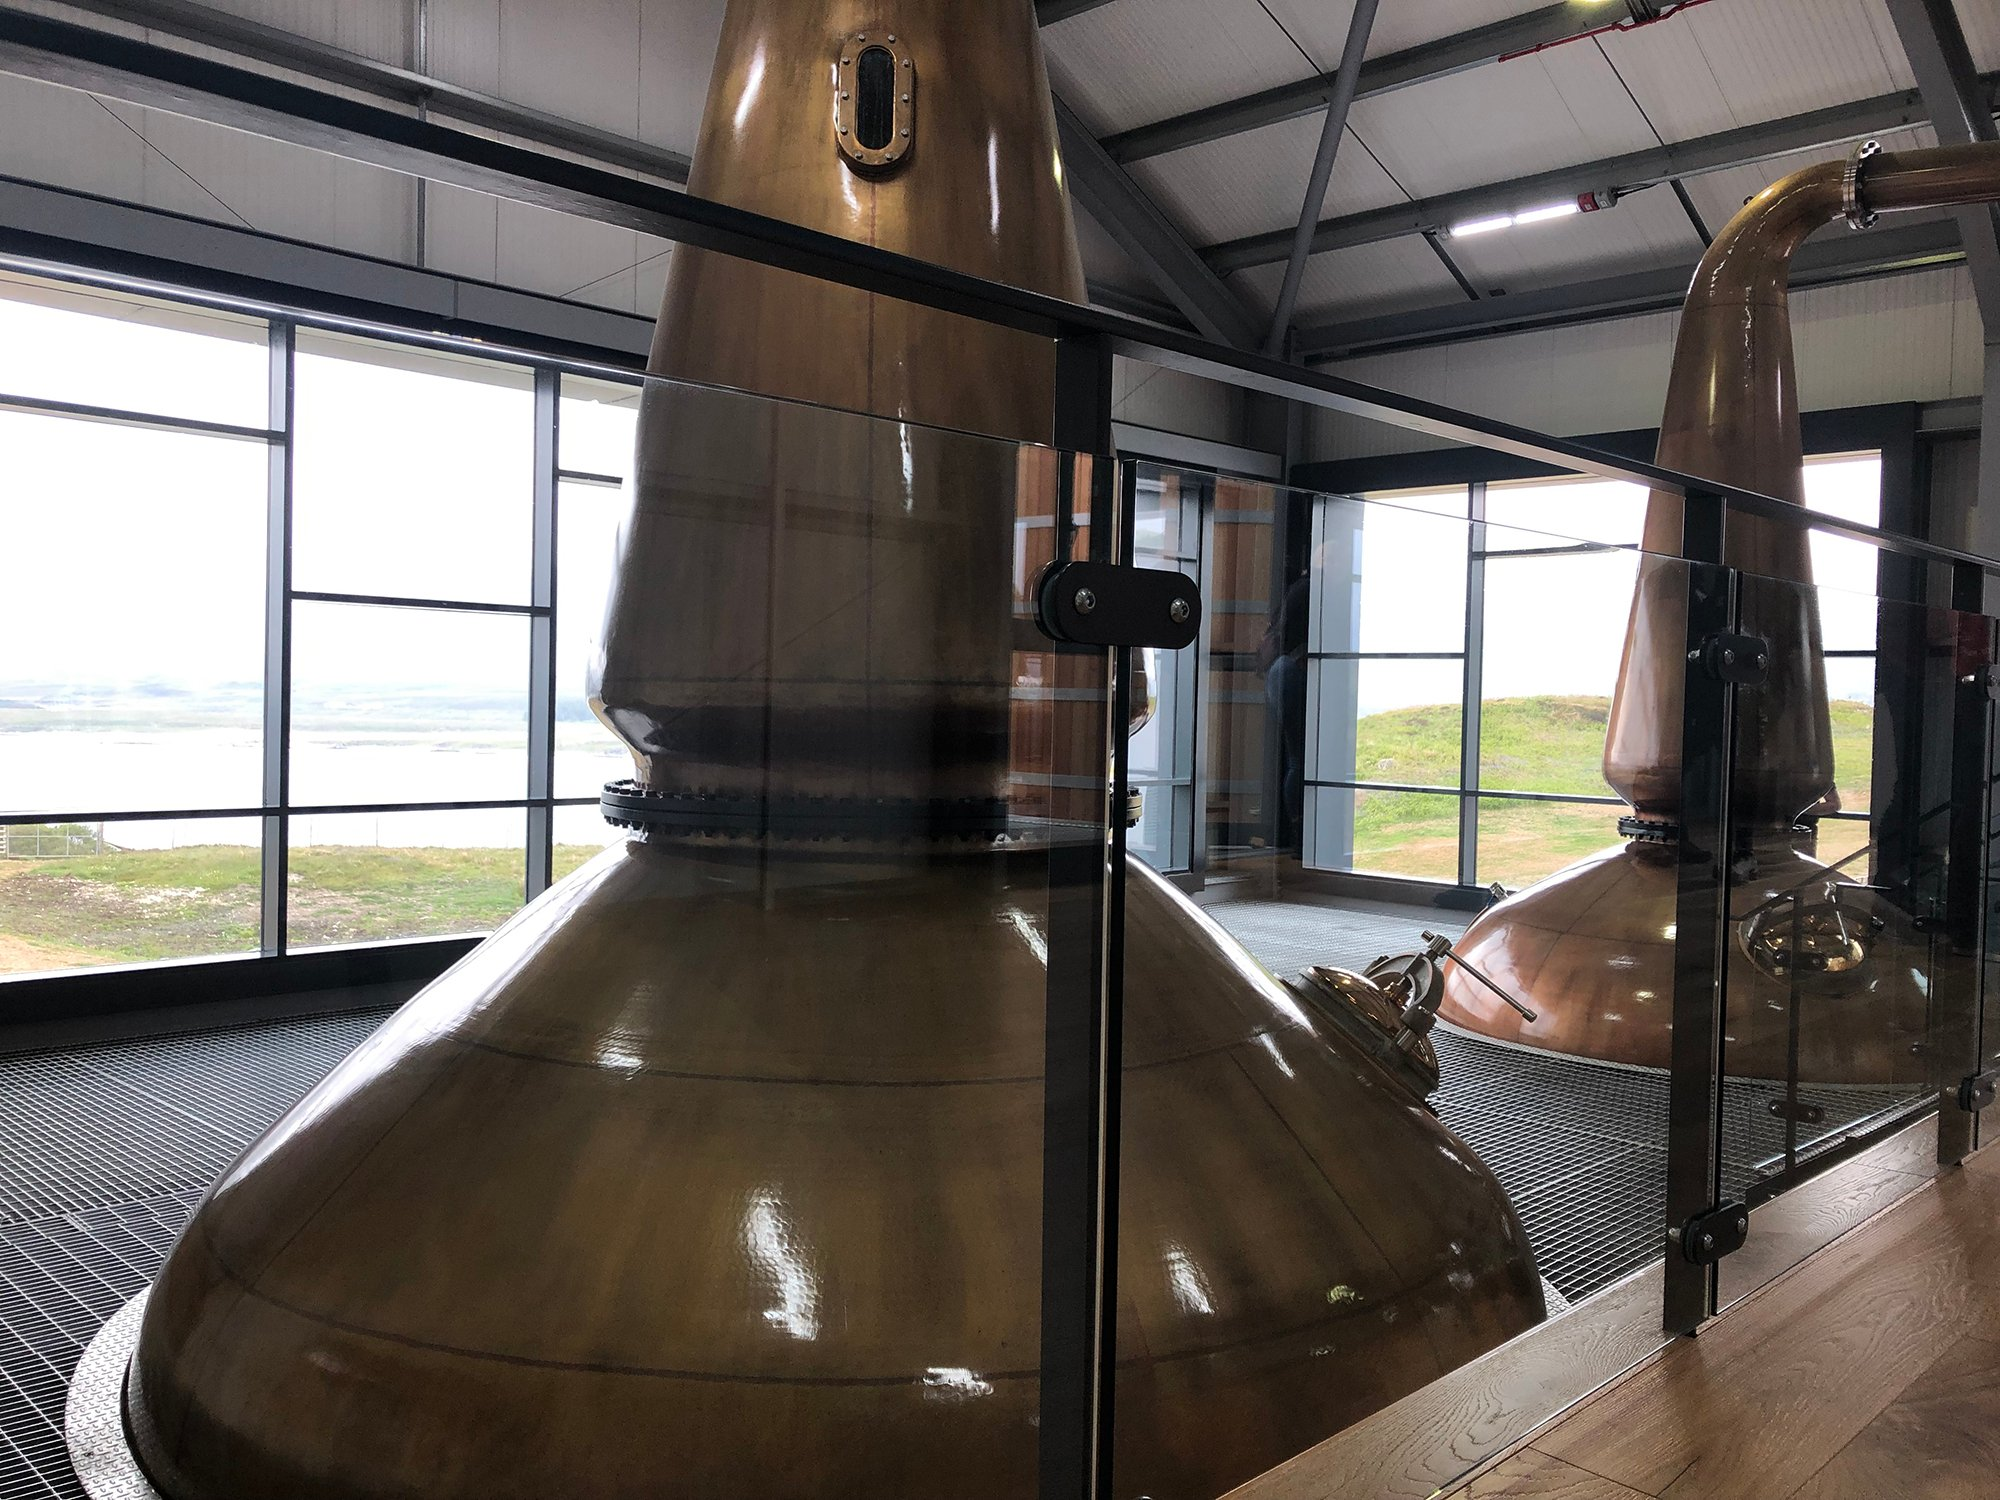 https://www.masterofmalt.com/blog/post/ardnahoe-a-closer-look-at-islays-newest-distillery.aspx